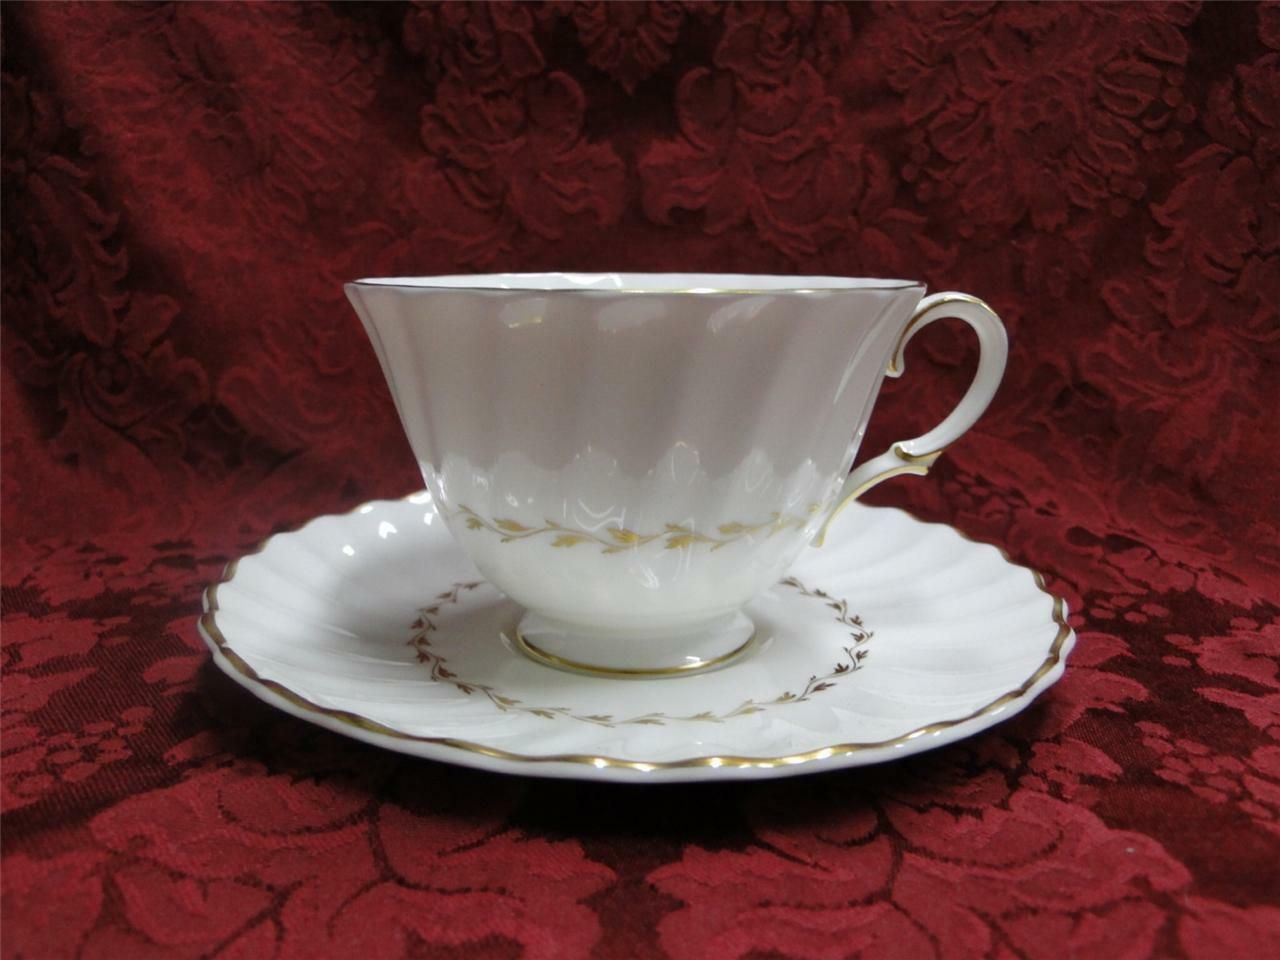 Royal Doulton Adrian, White, Gold Laurel, Swirl Rim: Cup & Saucer Set (s)